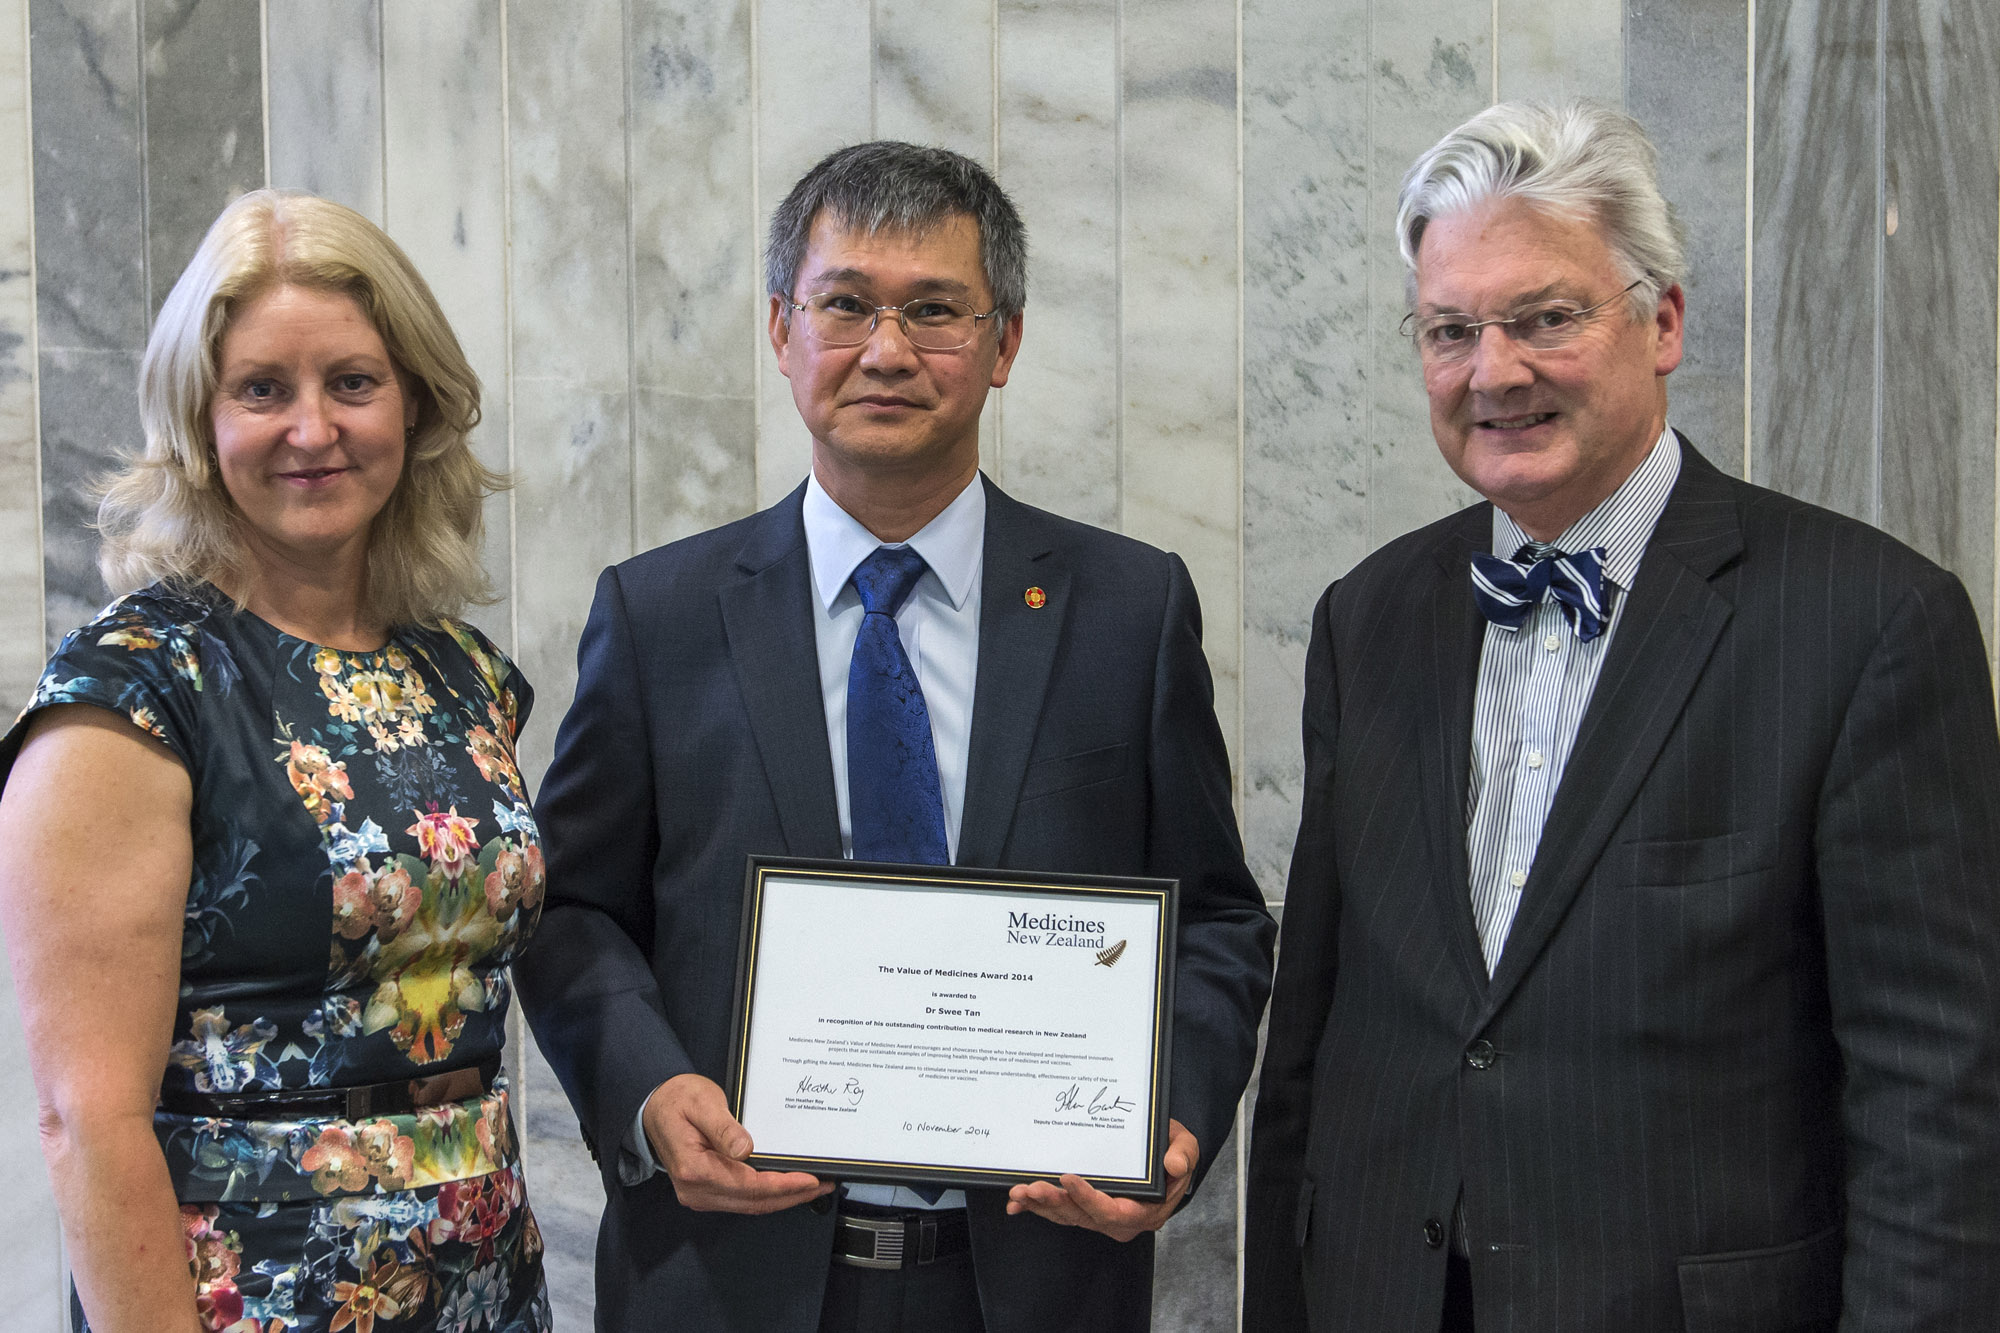 From left, Hon Heather Roy, Chair of Medicines New Zealand, Dr Swee Tan and Hon Peter Dunne